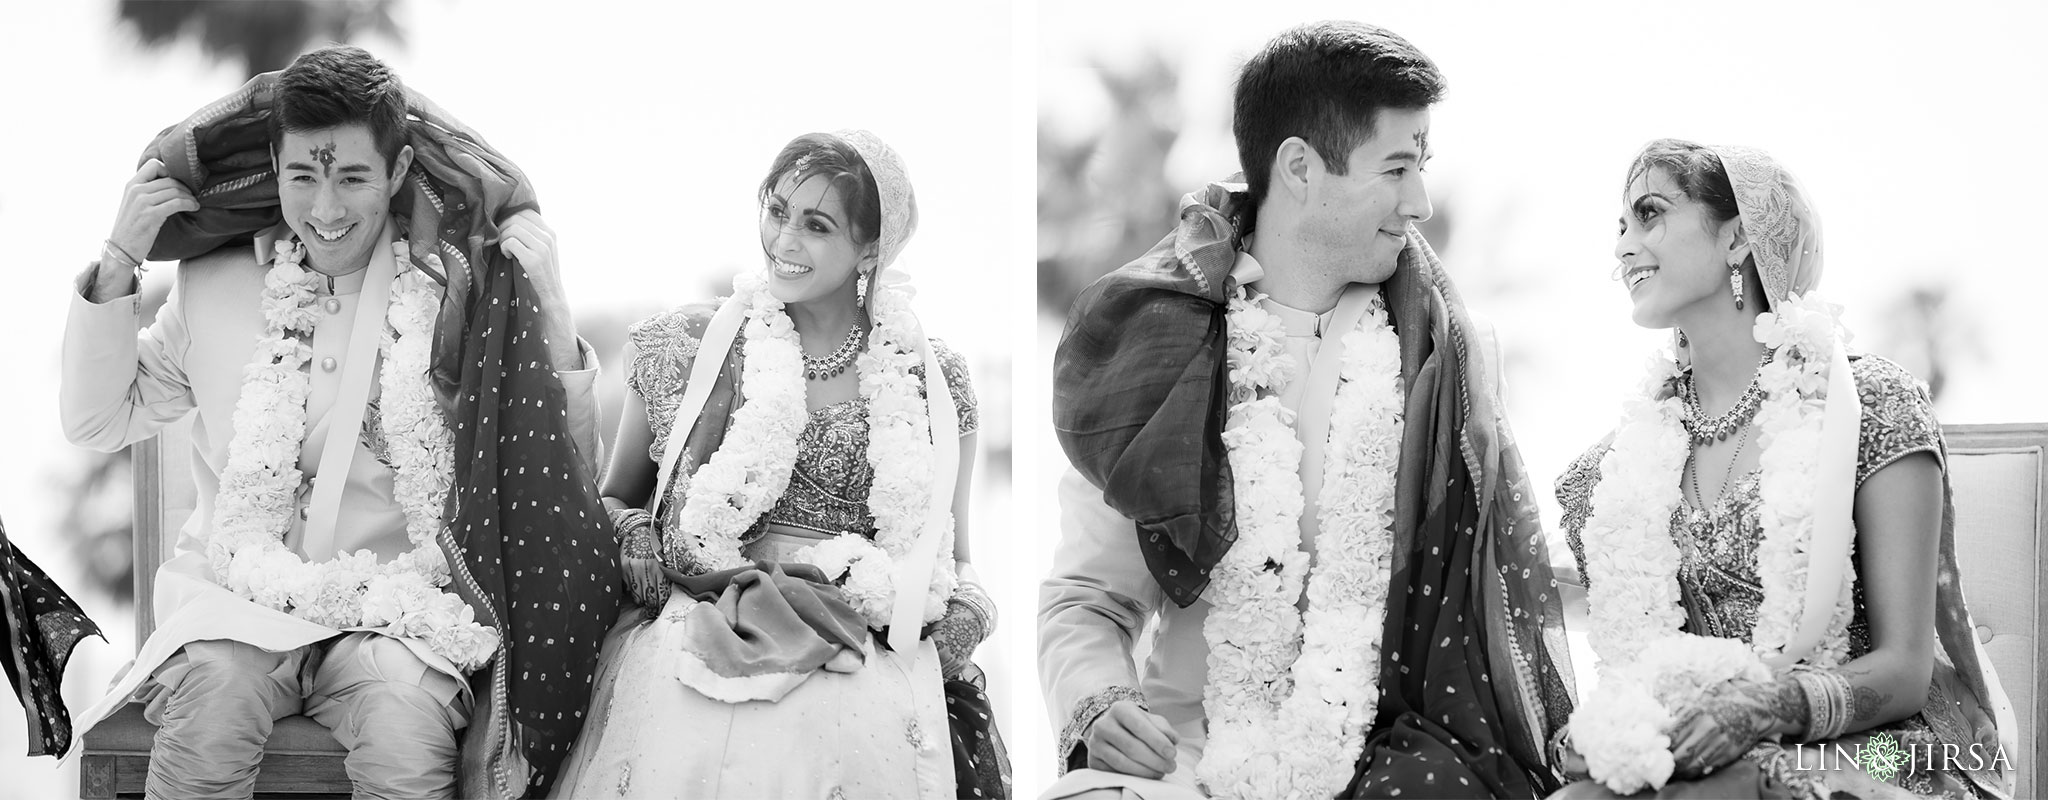 31 pasea hotel and spa huntington beach indian wedding ceremony photography